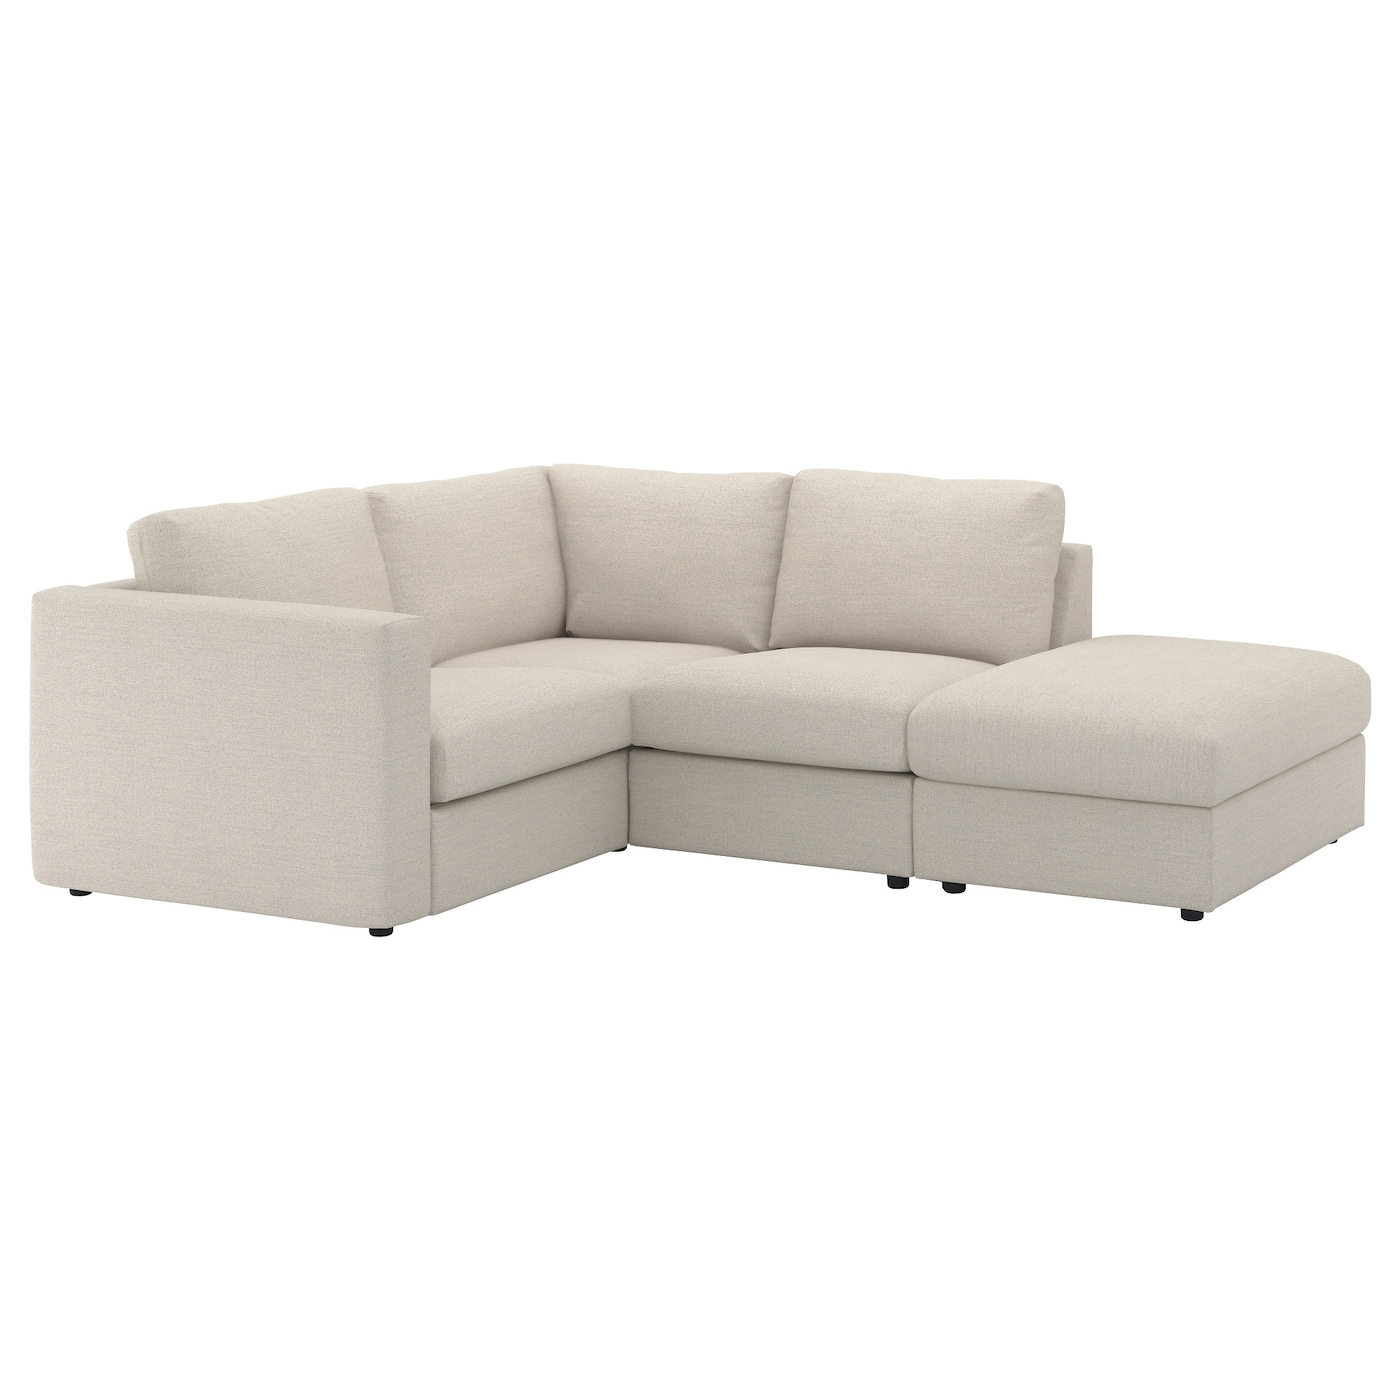 Bon IKEA VIMLE Corner Sofa, 3 Seat 10 Year Guarantee. Read About The Terms